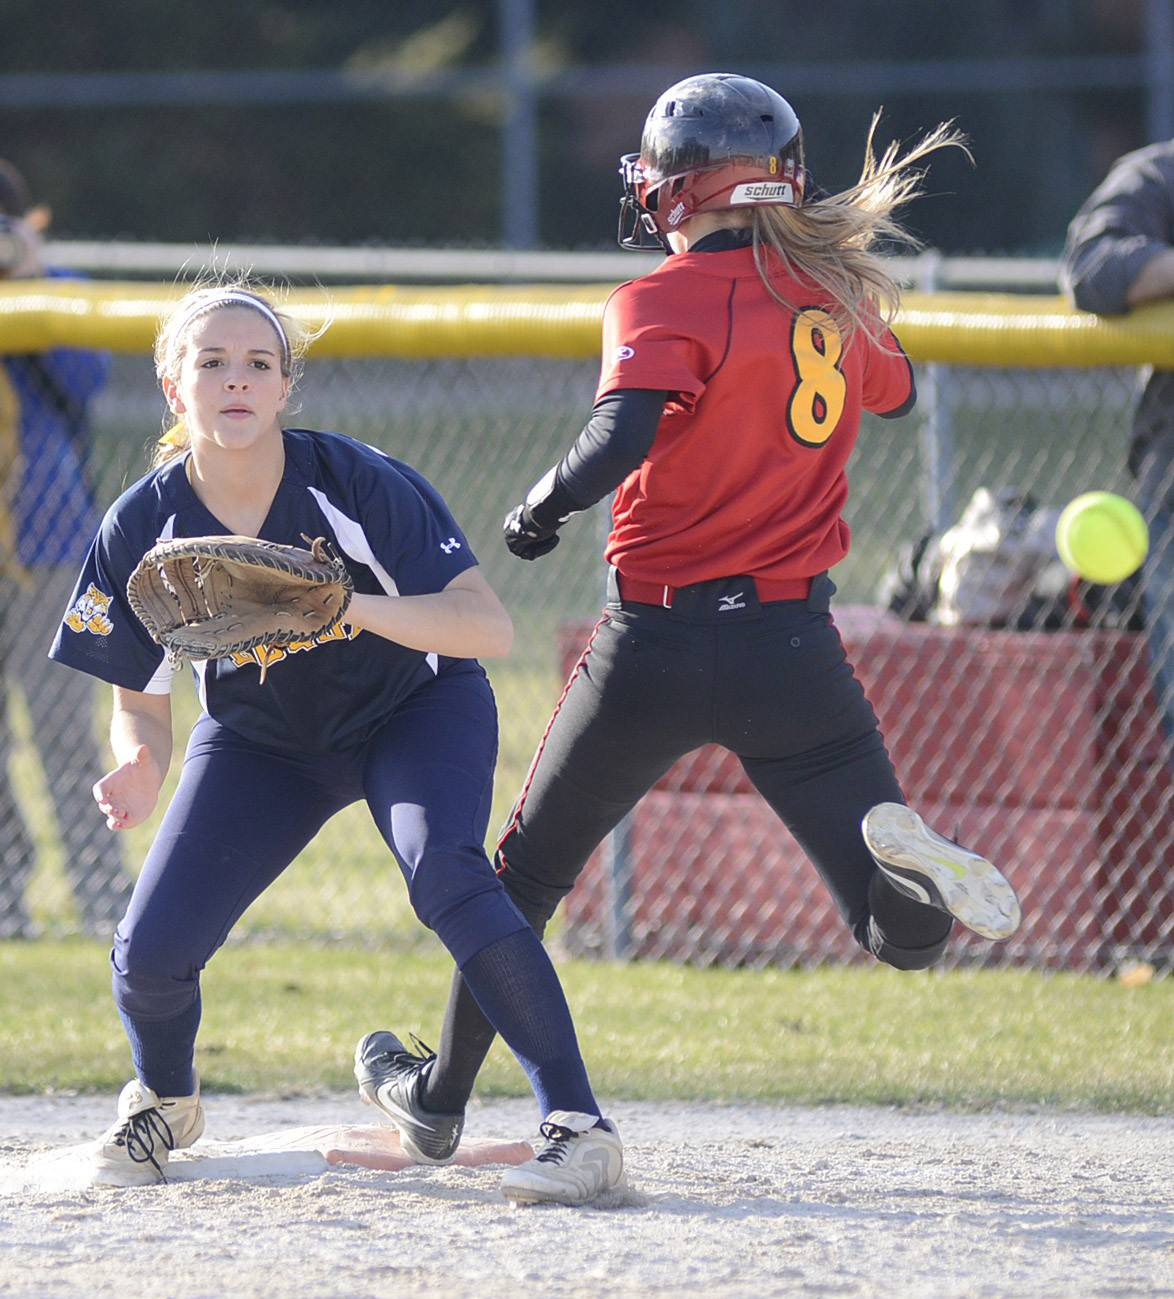 Batavia's Toni Galas is safe on first before the ball hits the mitt of Neuqua Valley's Jessie Boudreau in the fifth inning on Wednesday, April 9.